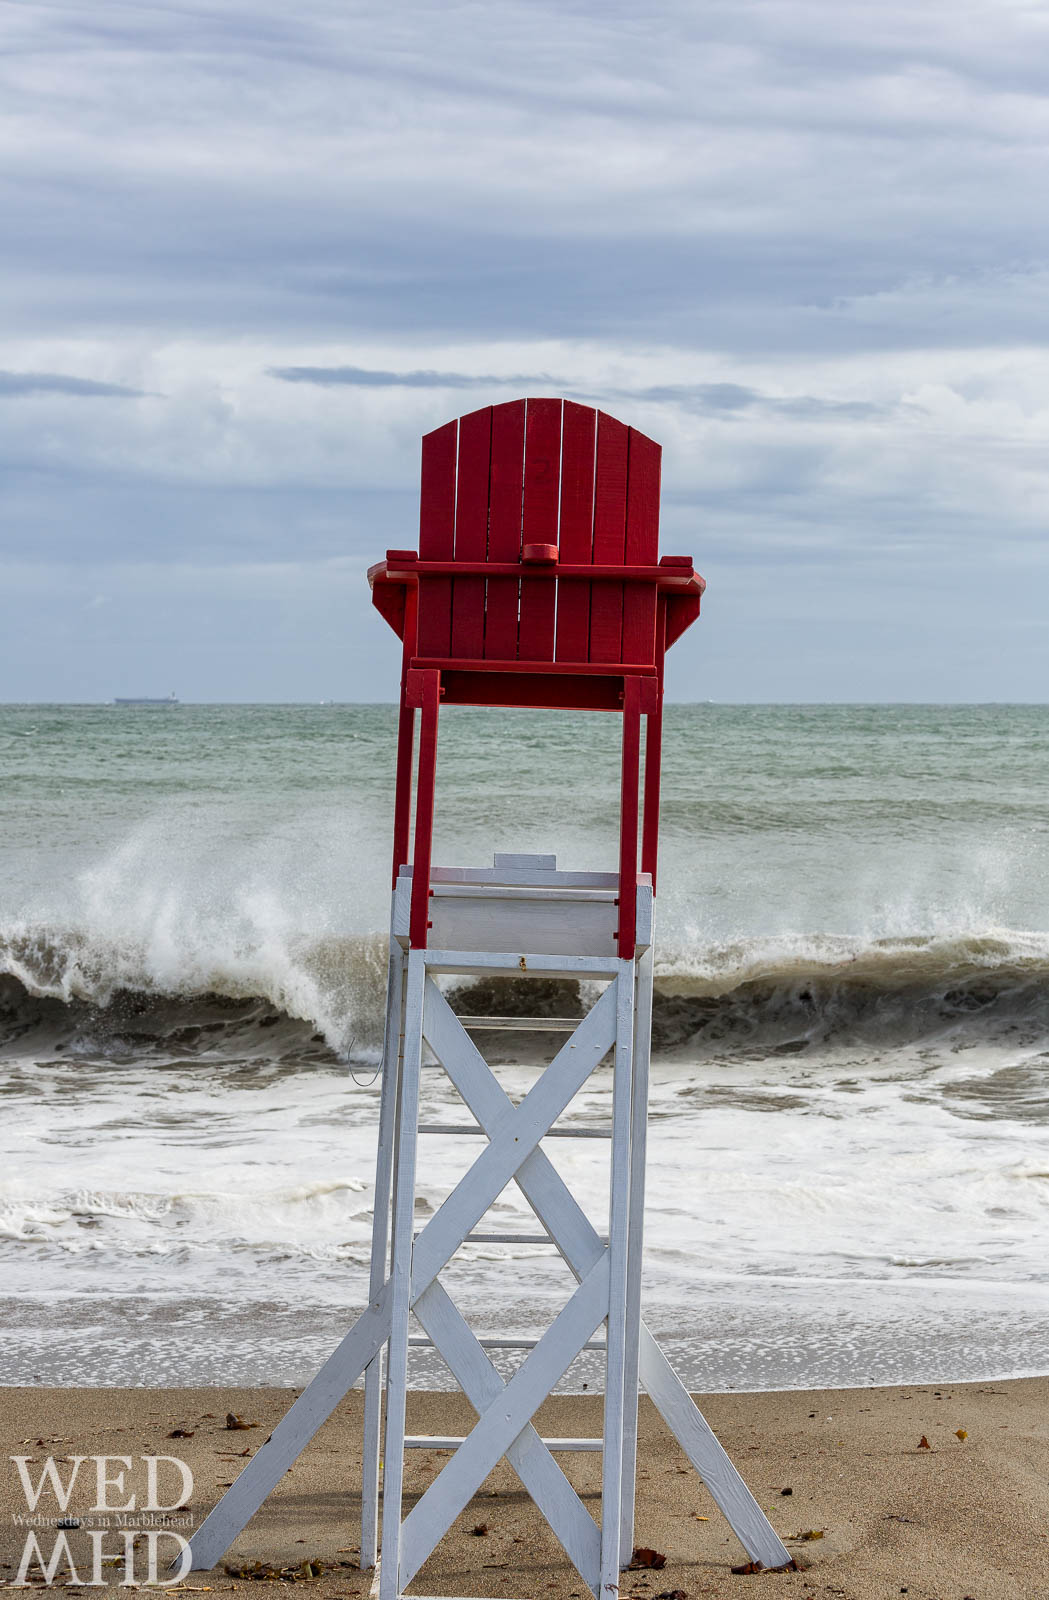 cfae5a47f15e Churning Waves and the Lifeguard Chair - Marblehead